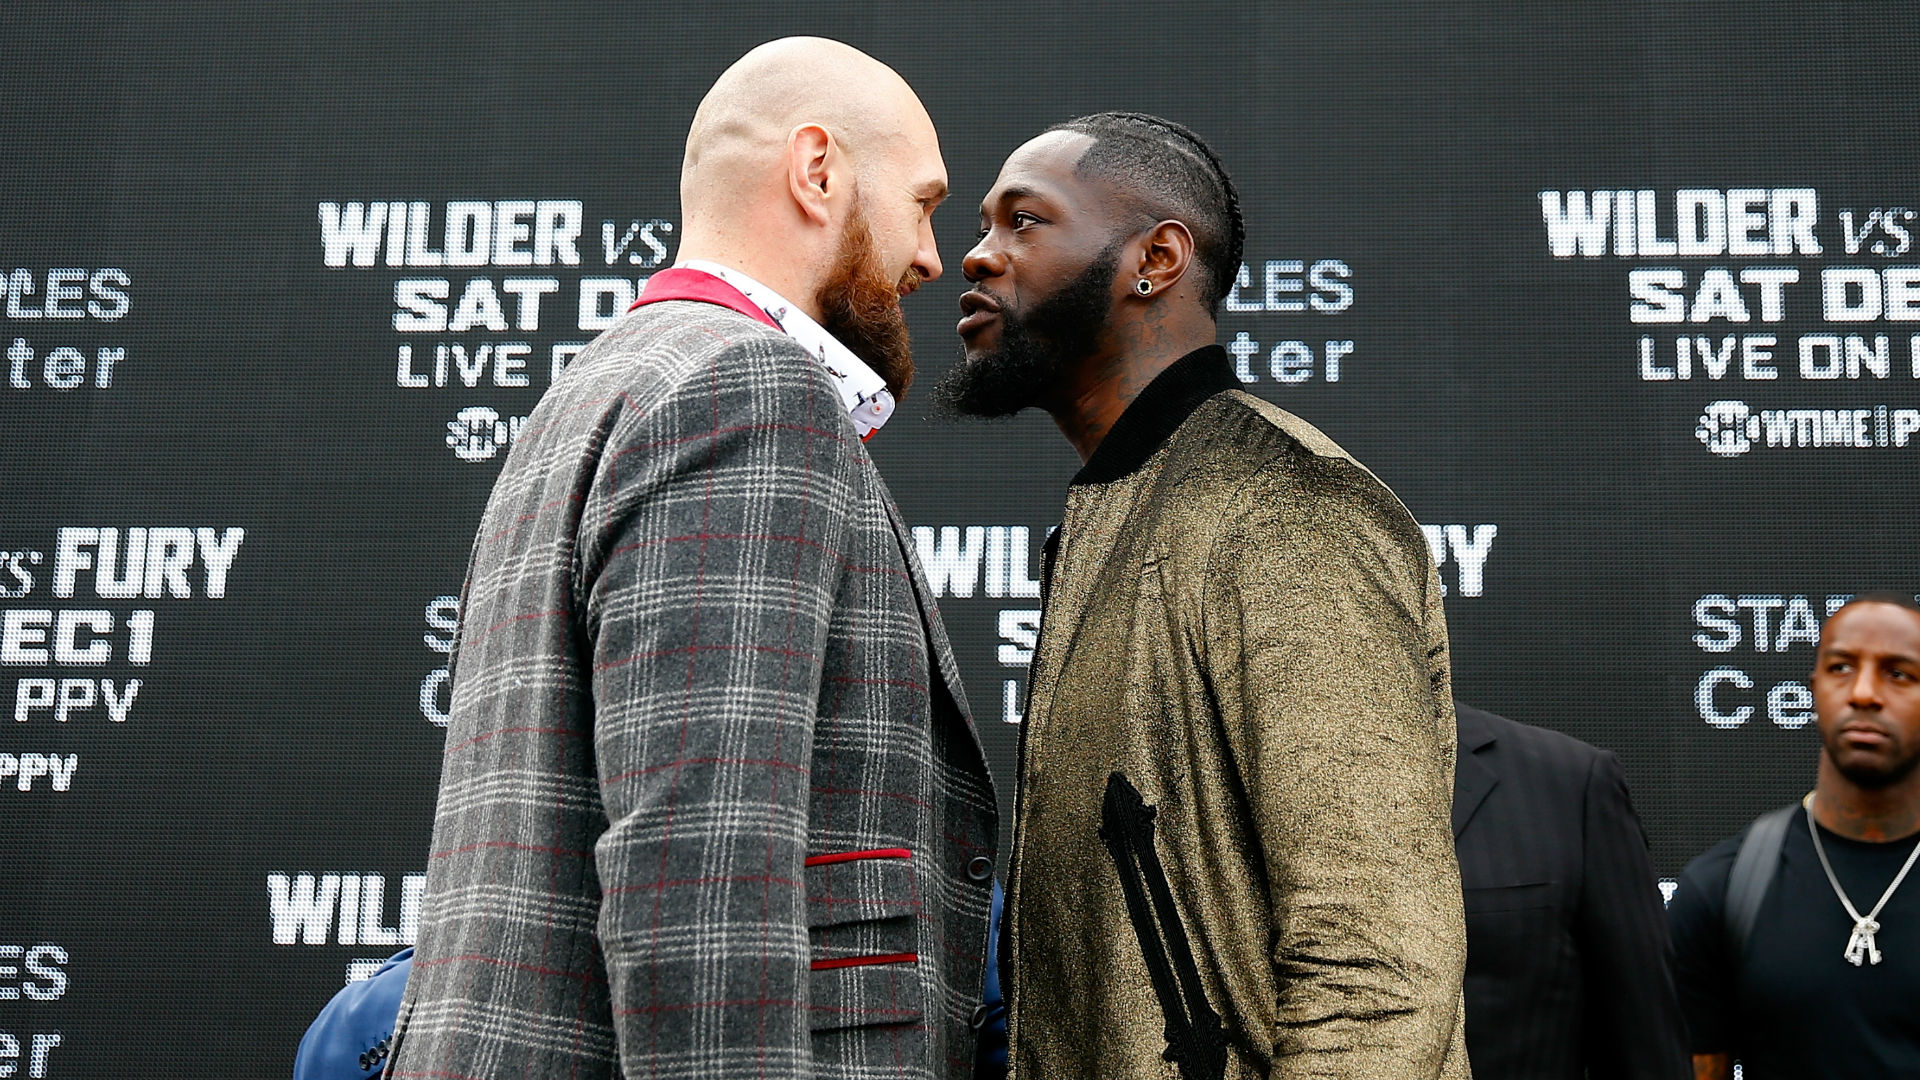 Wilder retains heavyweight crown after Fury thriller ends in draw